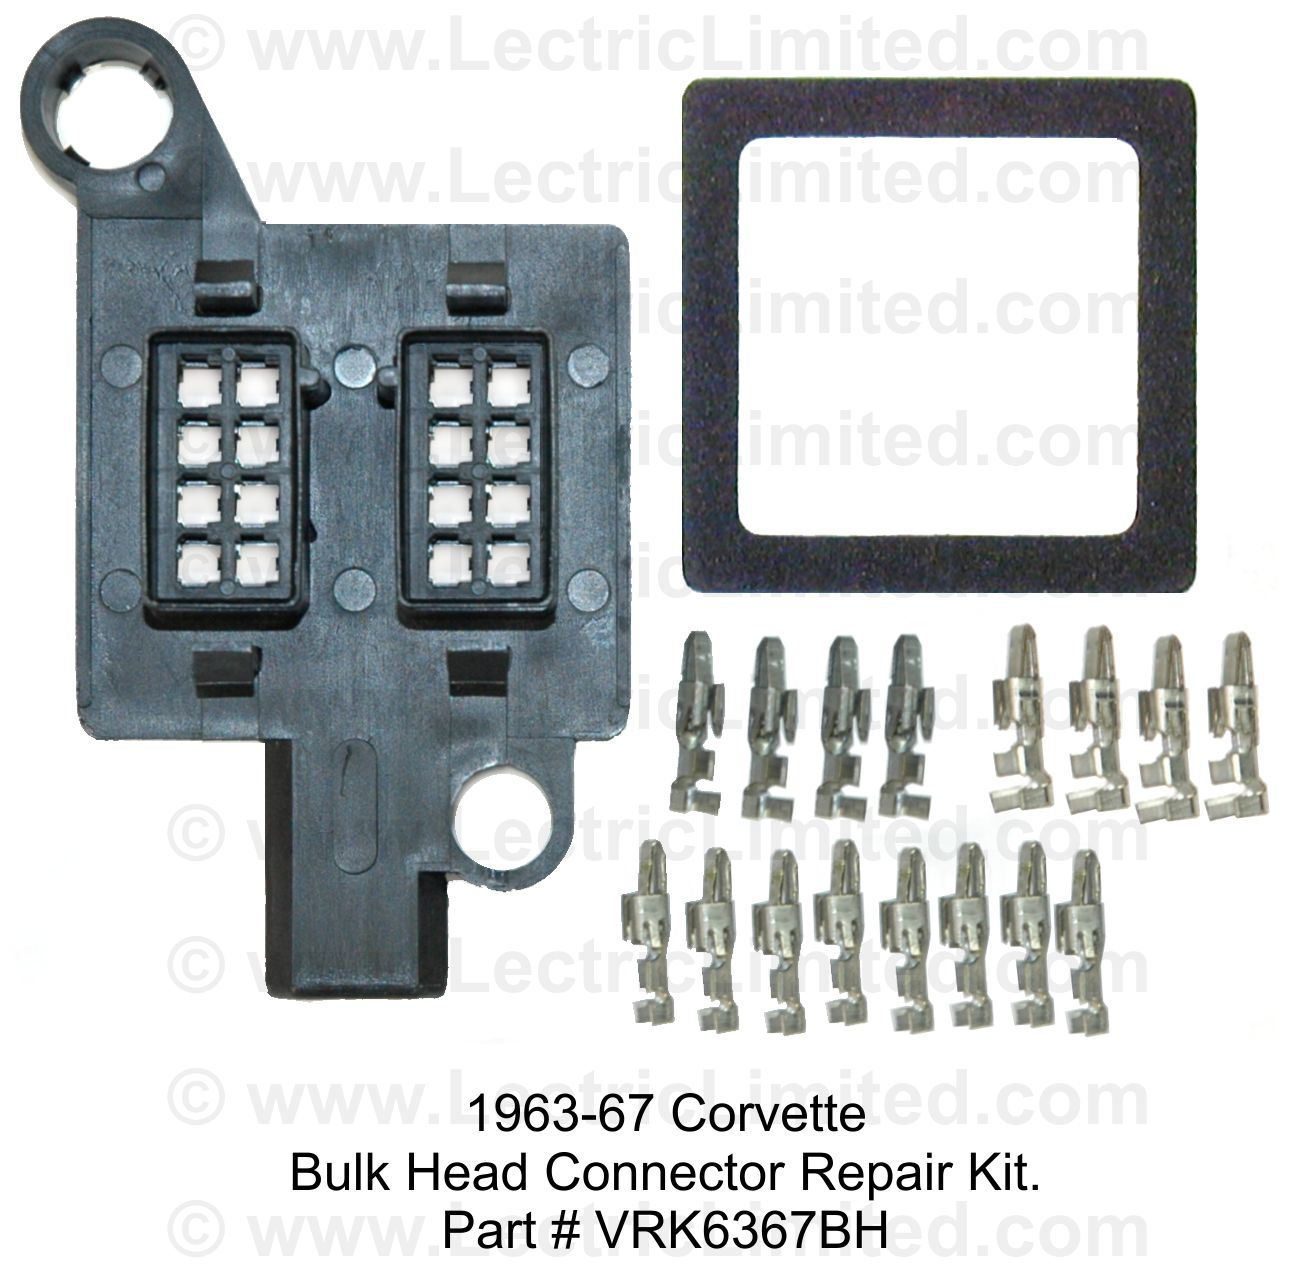 bulk_head_connector_repair_kits repair components 67 Mustang Dash Wiring at eliteediting.co